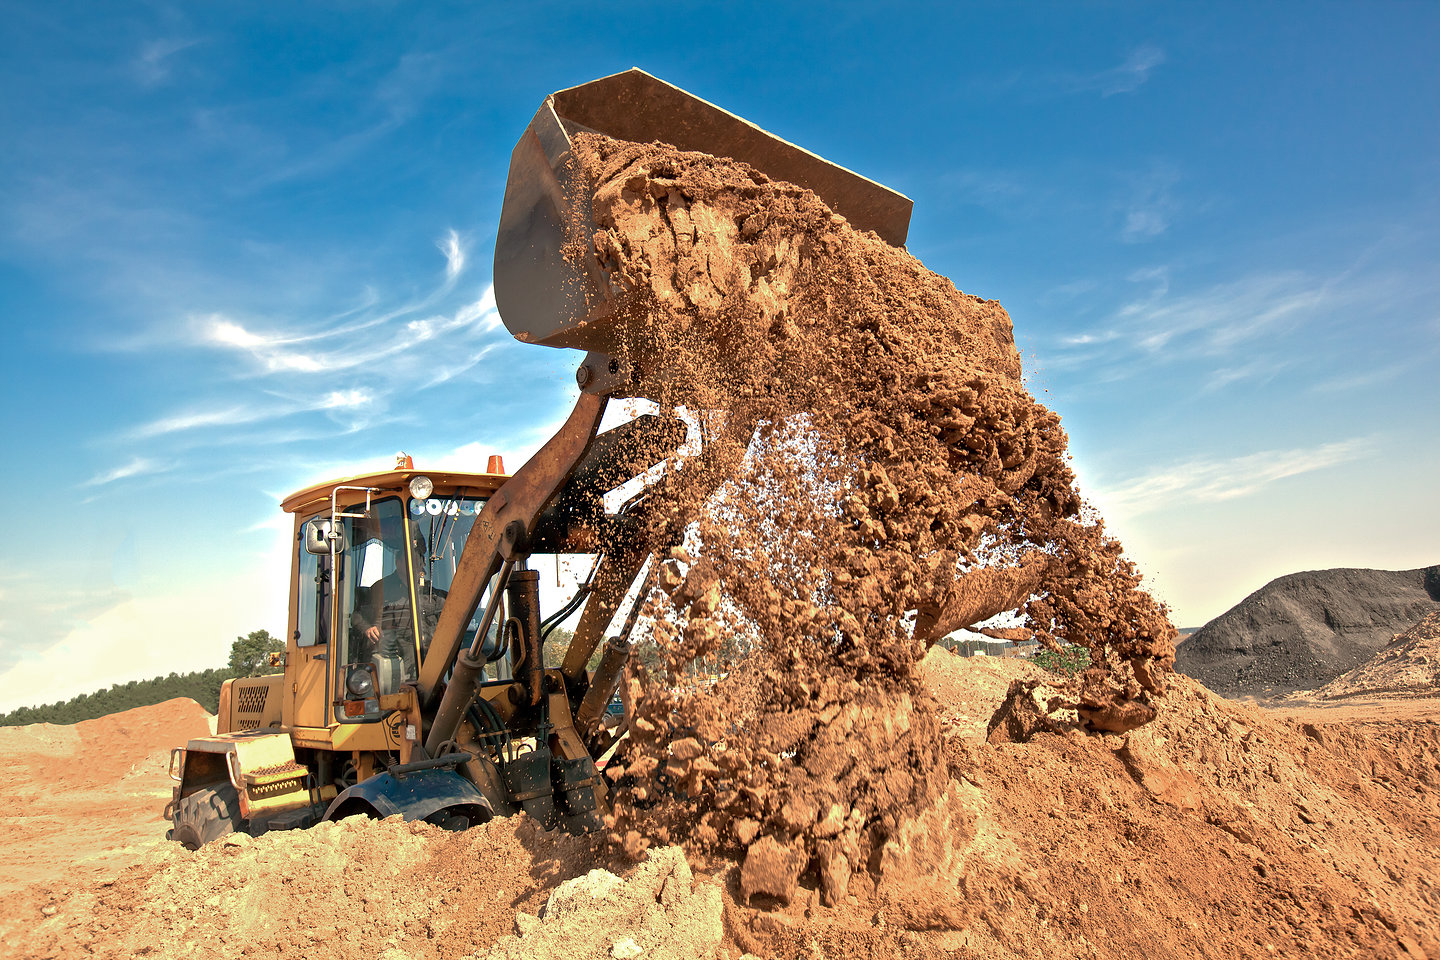 The Diesel Dirt and Turf Expo: Bigger and Better for 2017